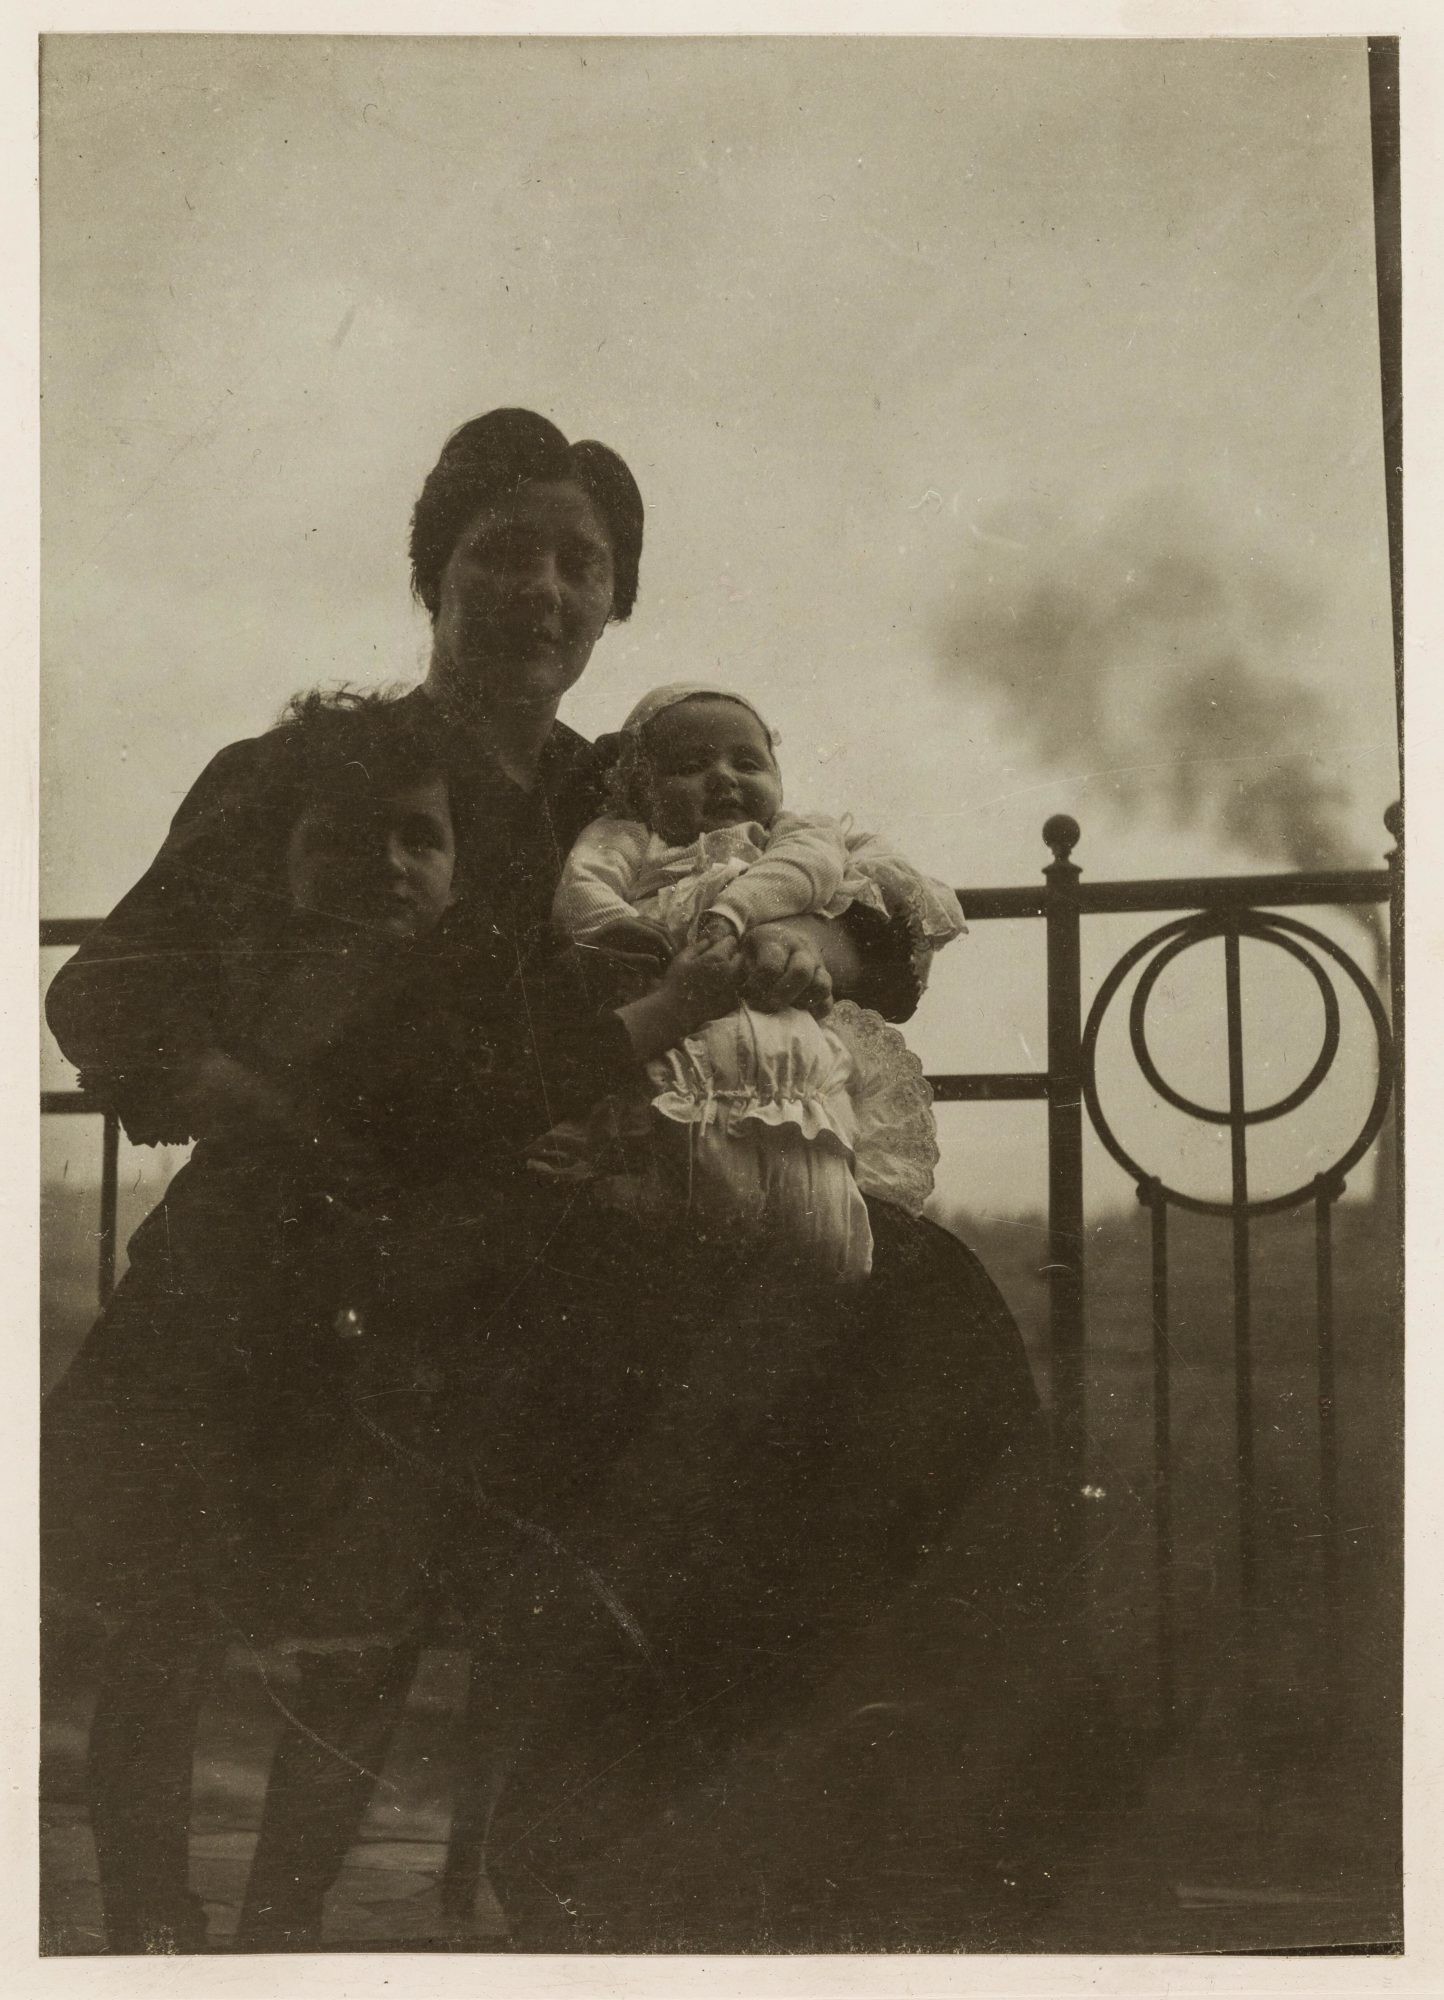 Photograph of Melanie Klein with her children Hans and Melitta around 1908